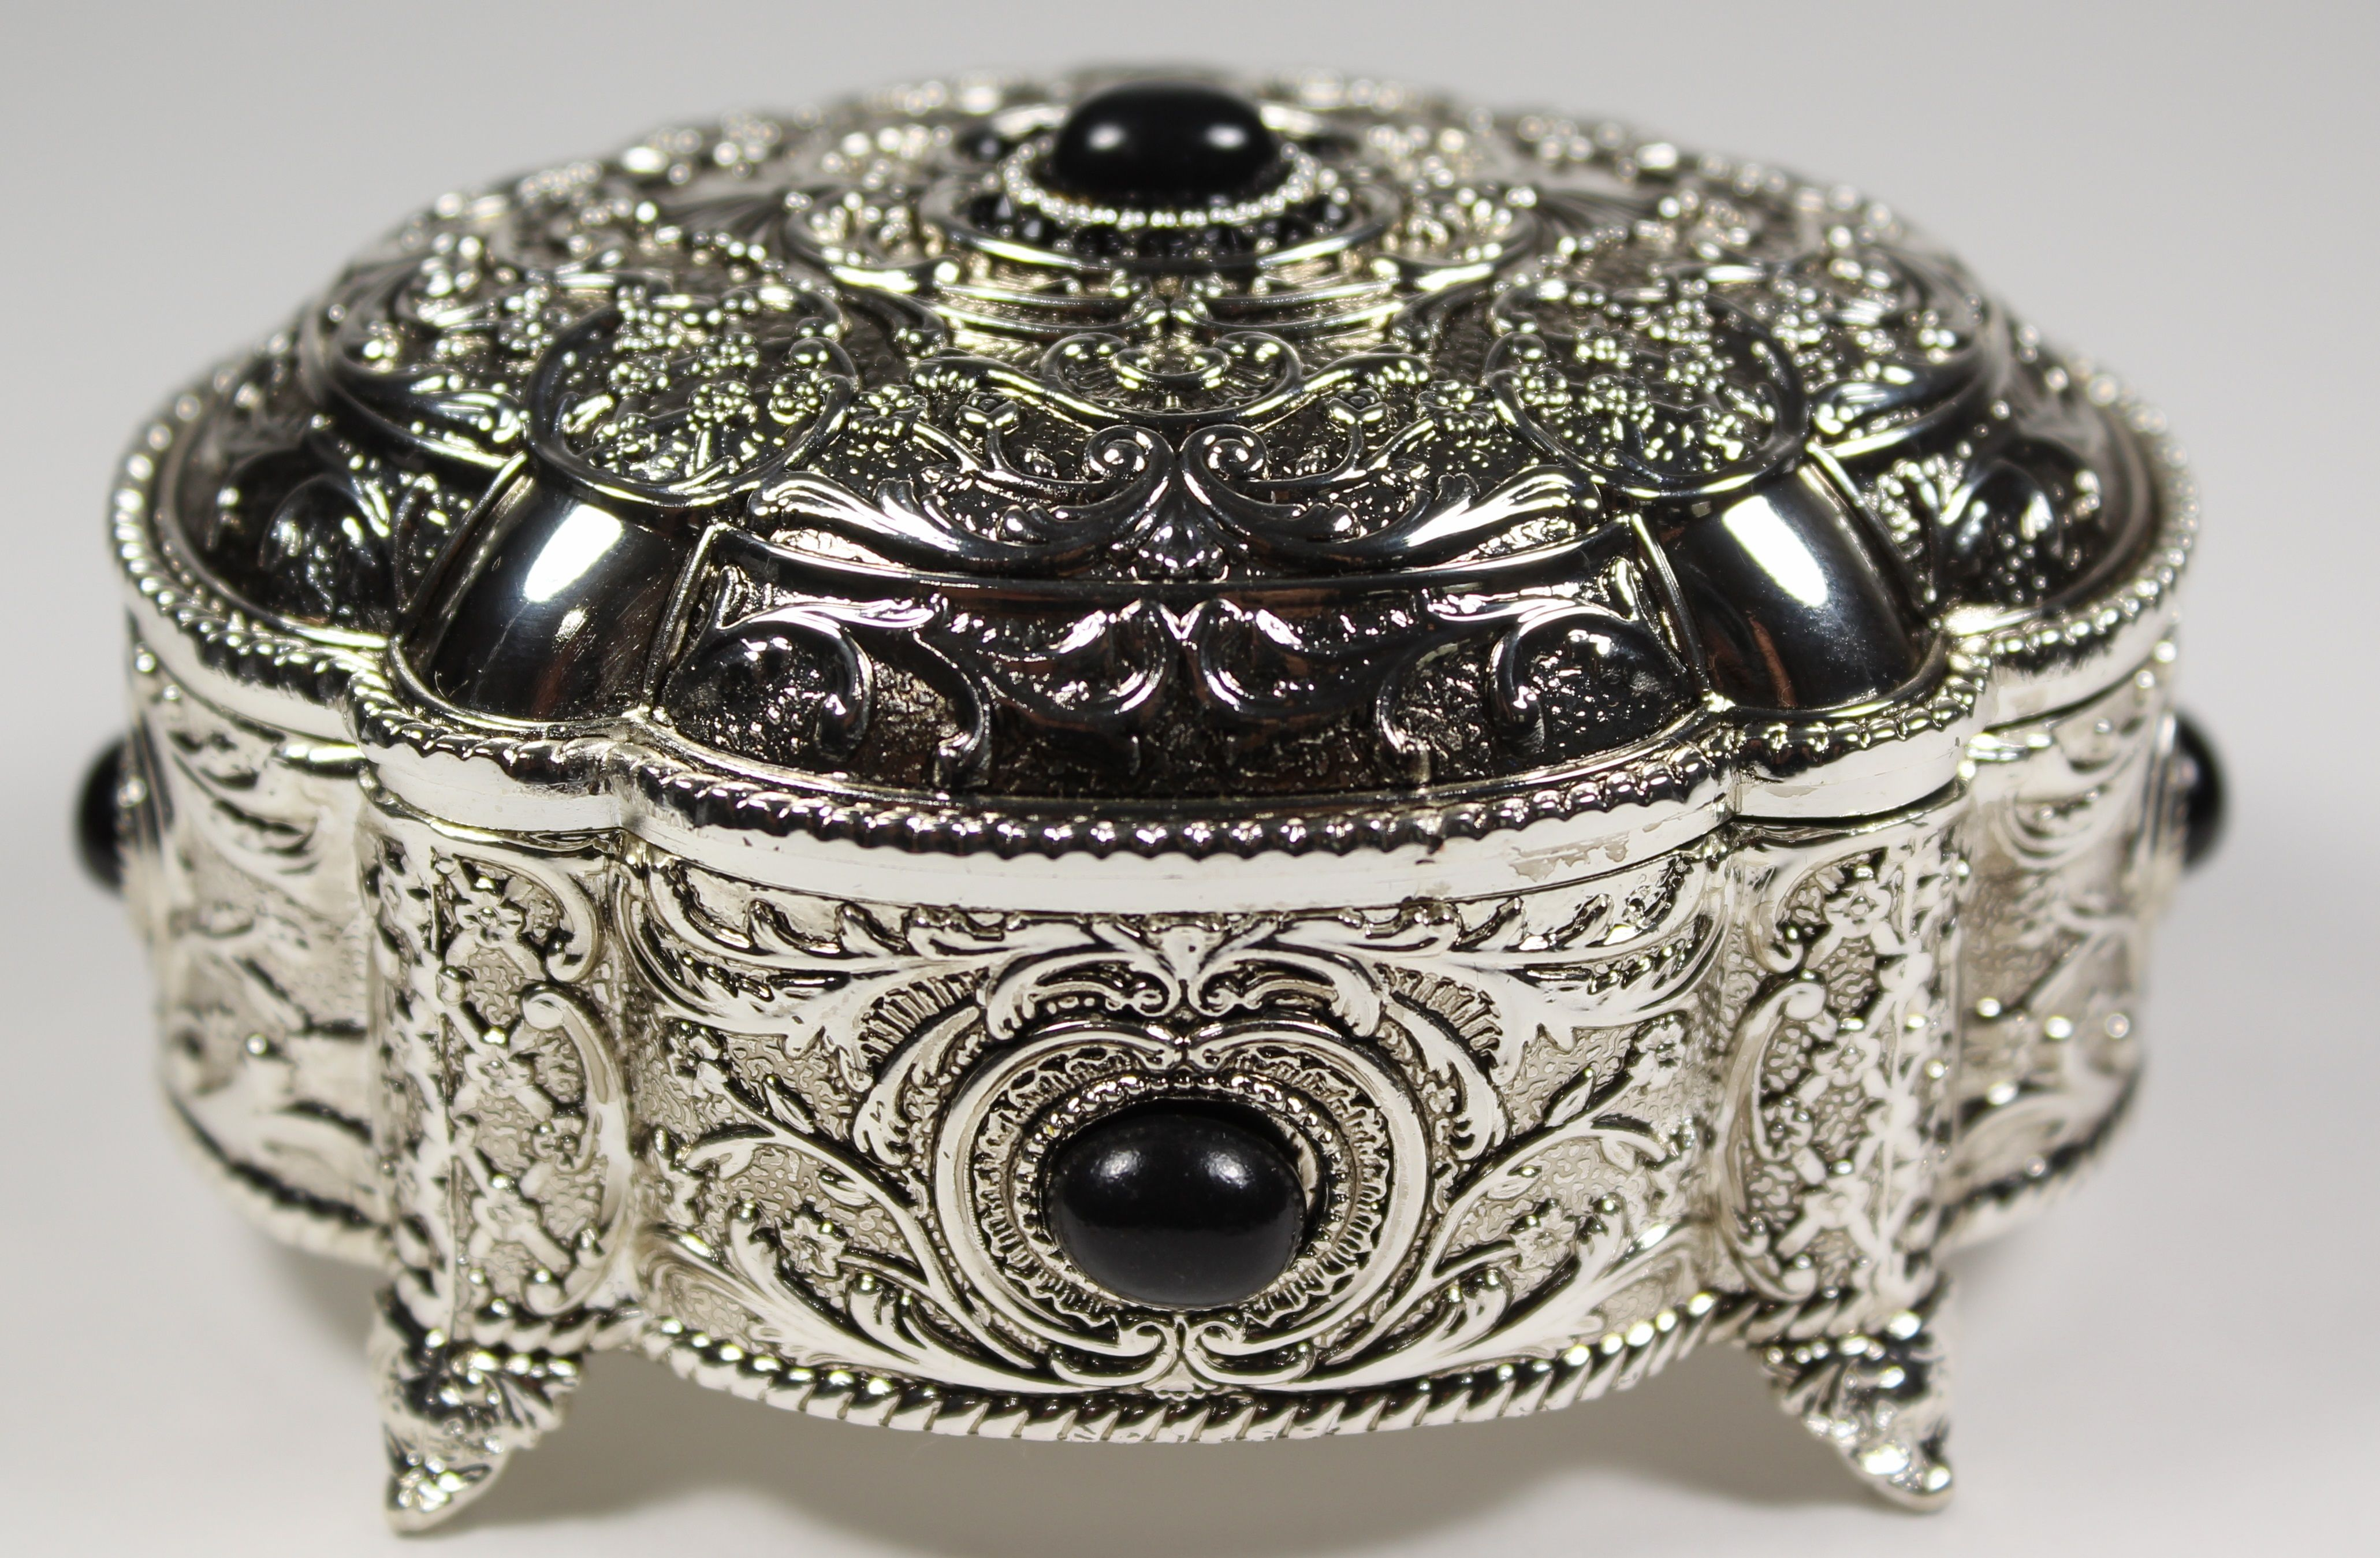 [Price 24.99] Antique Silver Jewelry Box with Gemstones